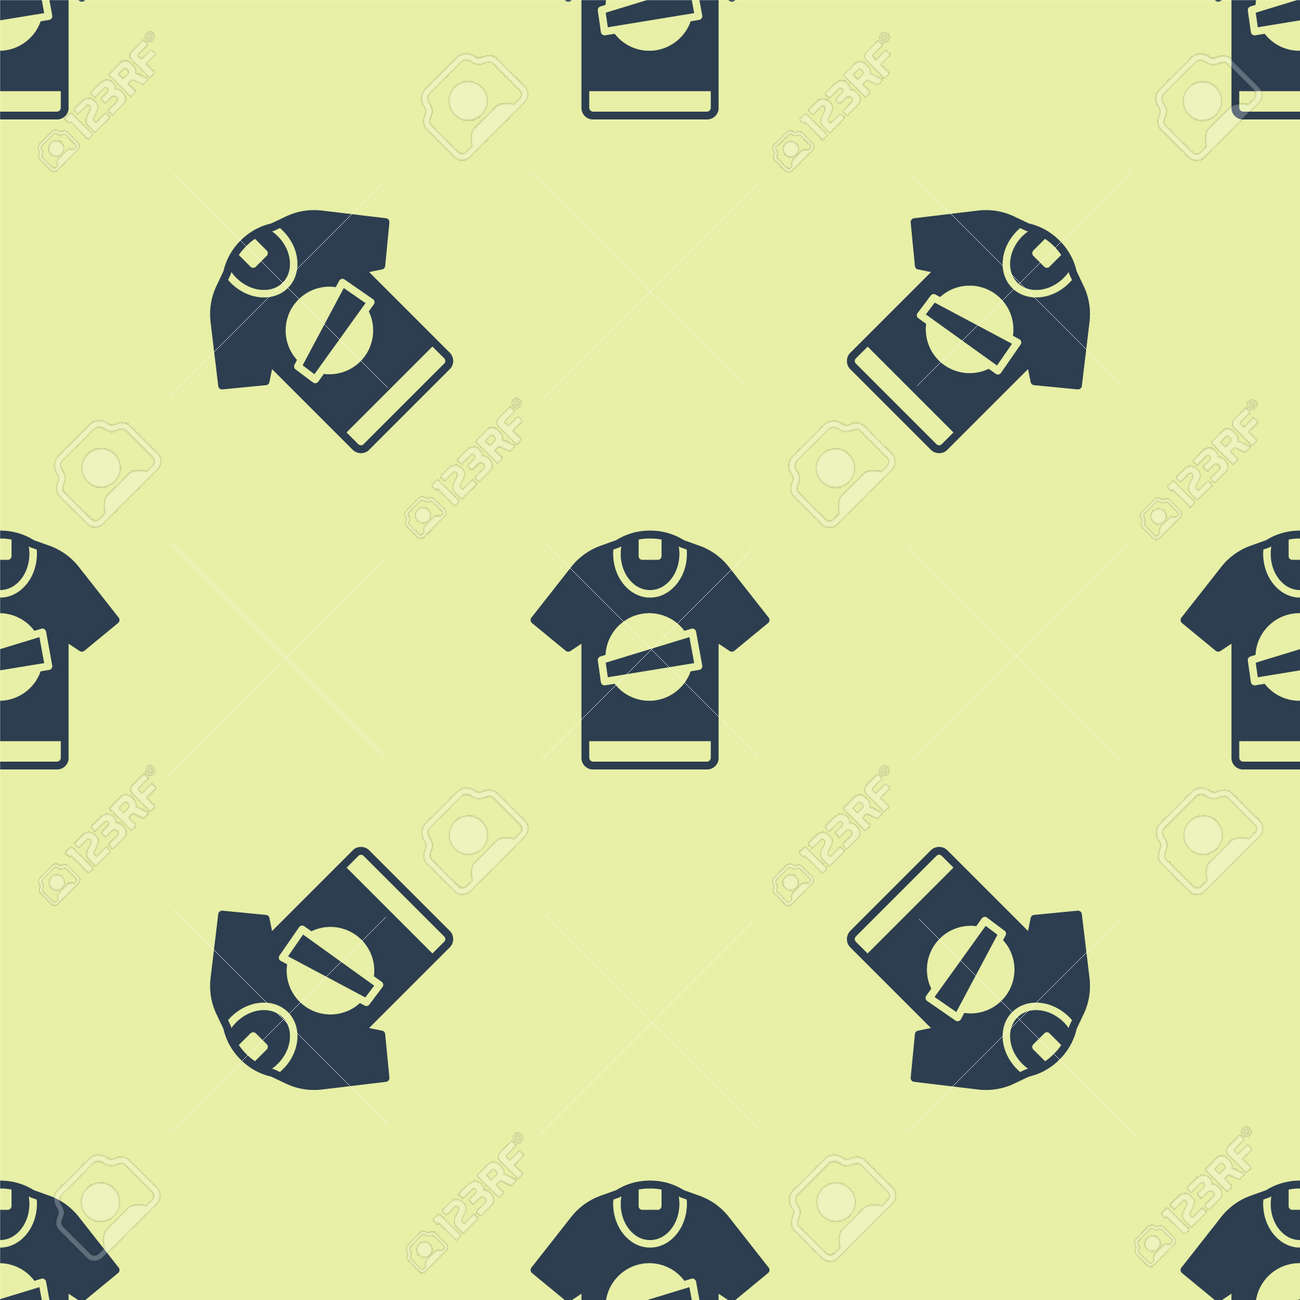 Blue T-shirt icon isolated seamless pattern on yellow background. Vector - 170180362